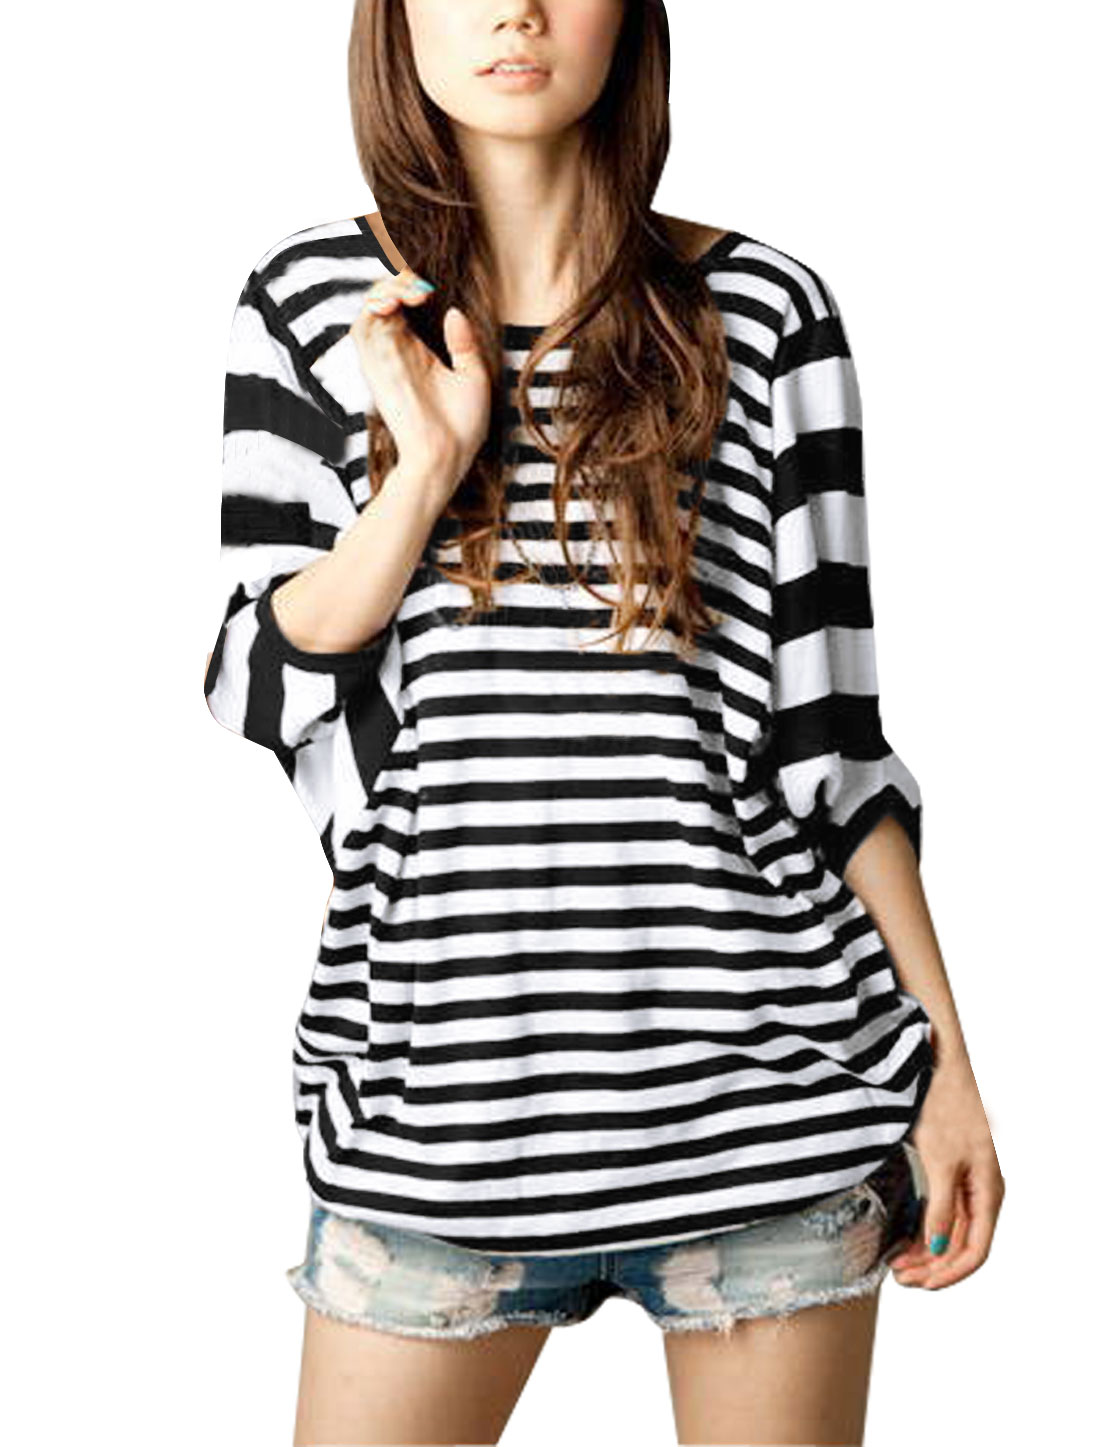 Women Stripes Scoop Neck Design Dolman Sleeve Black White Shirt 1X